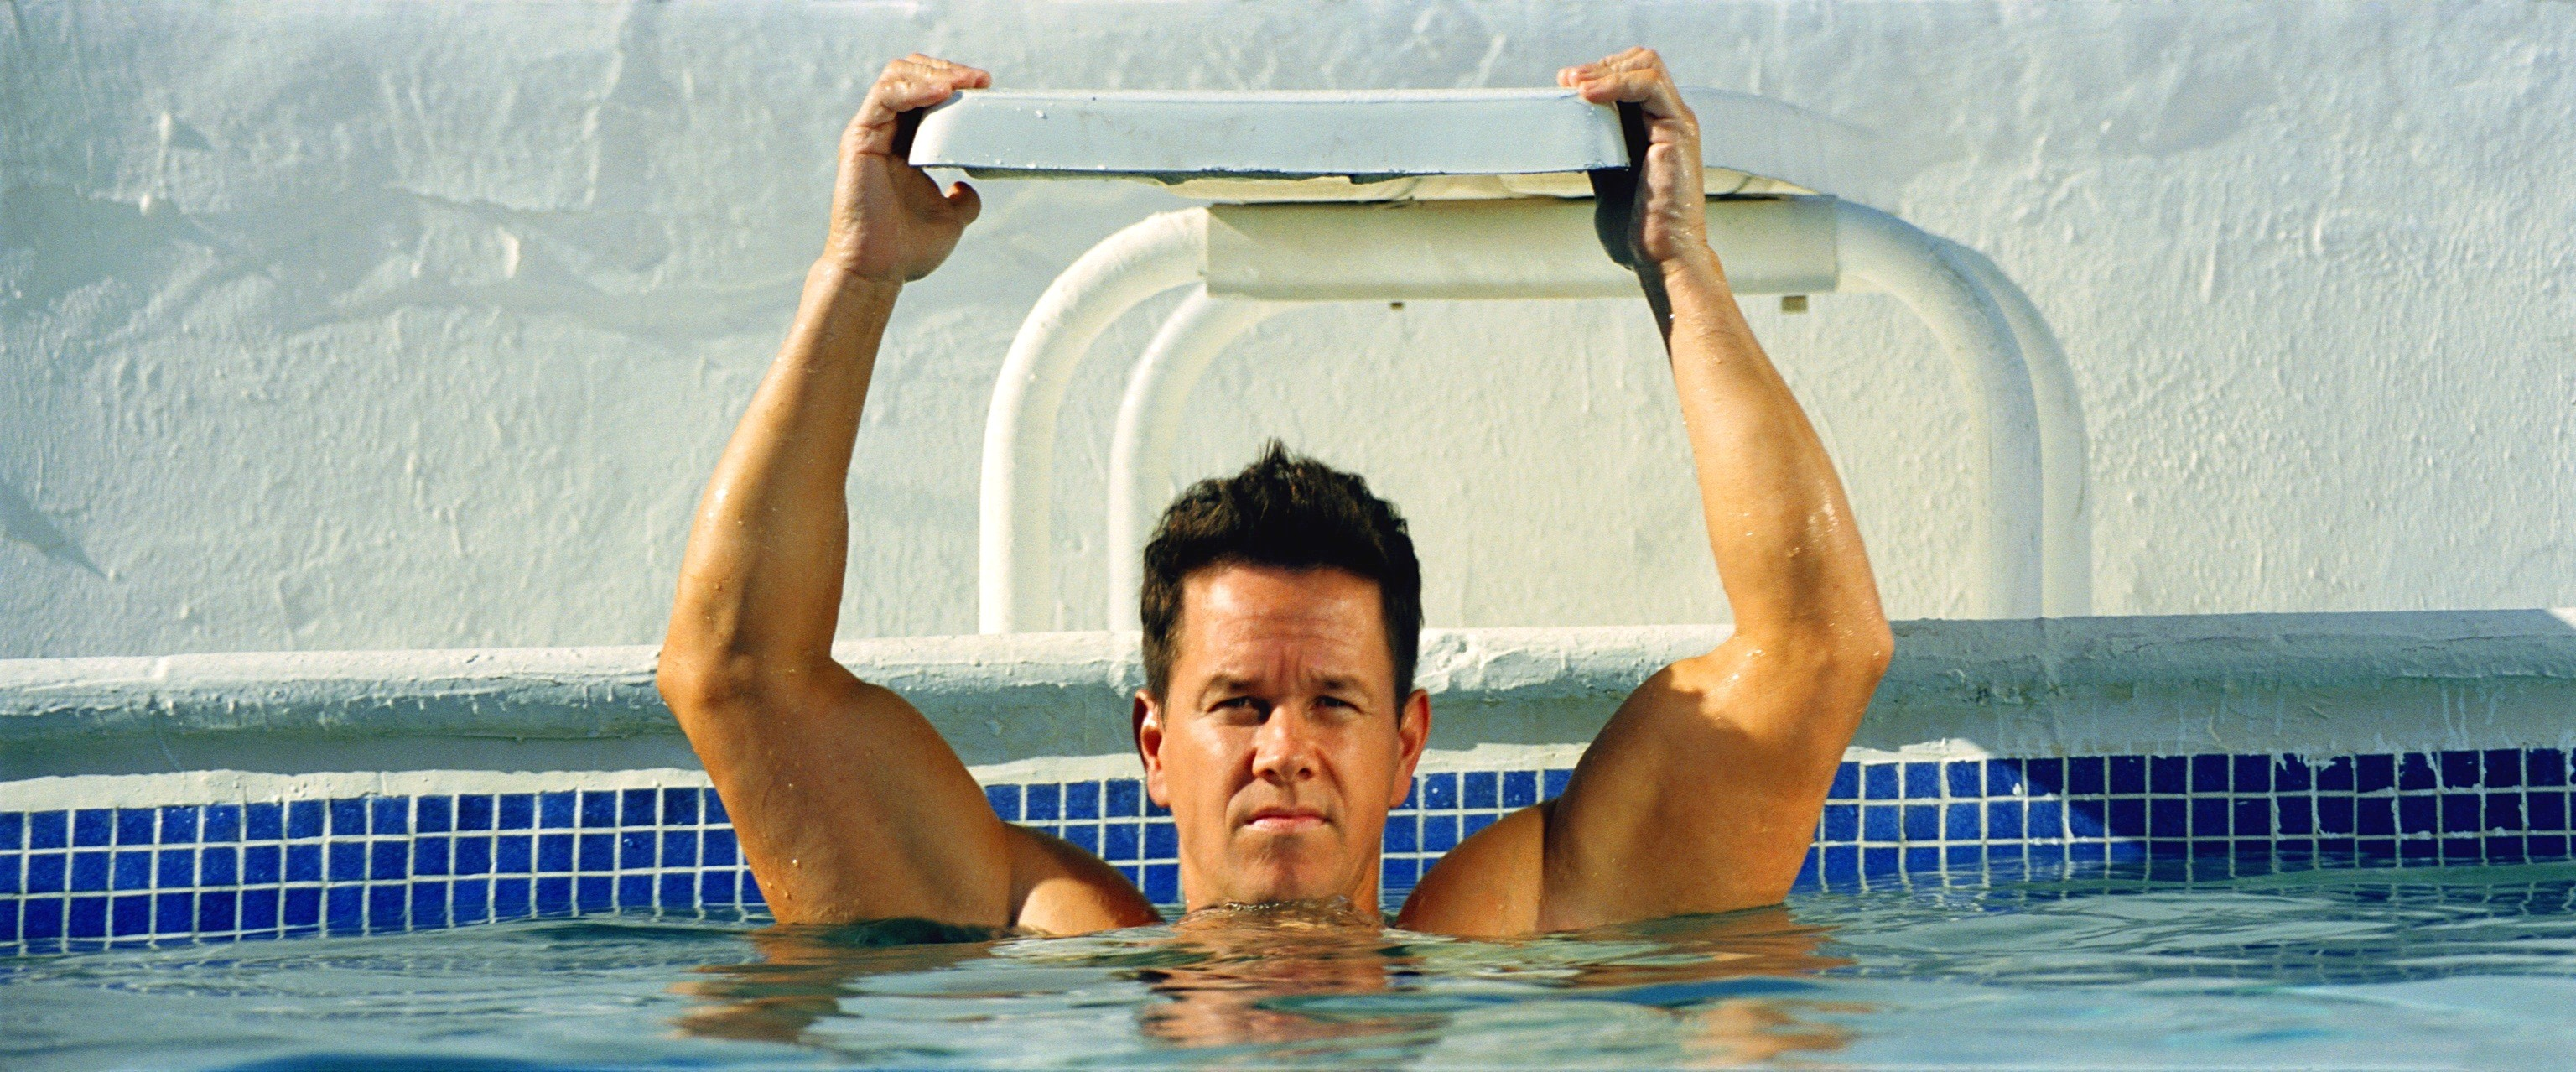 3072x1278 - Mark Wahlberg Wallpapers 14